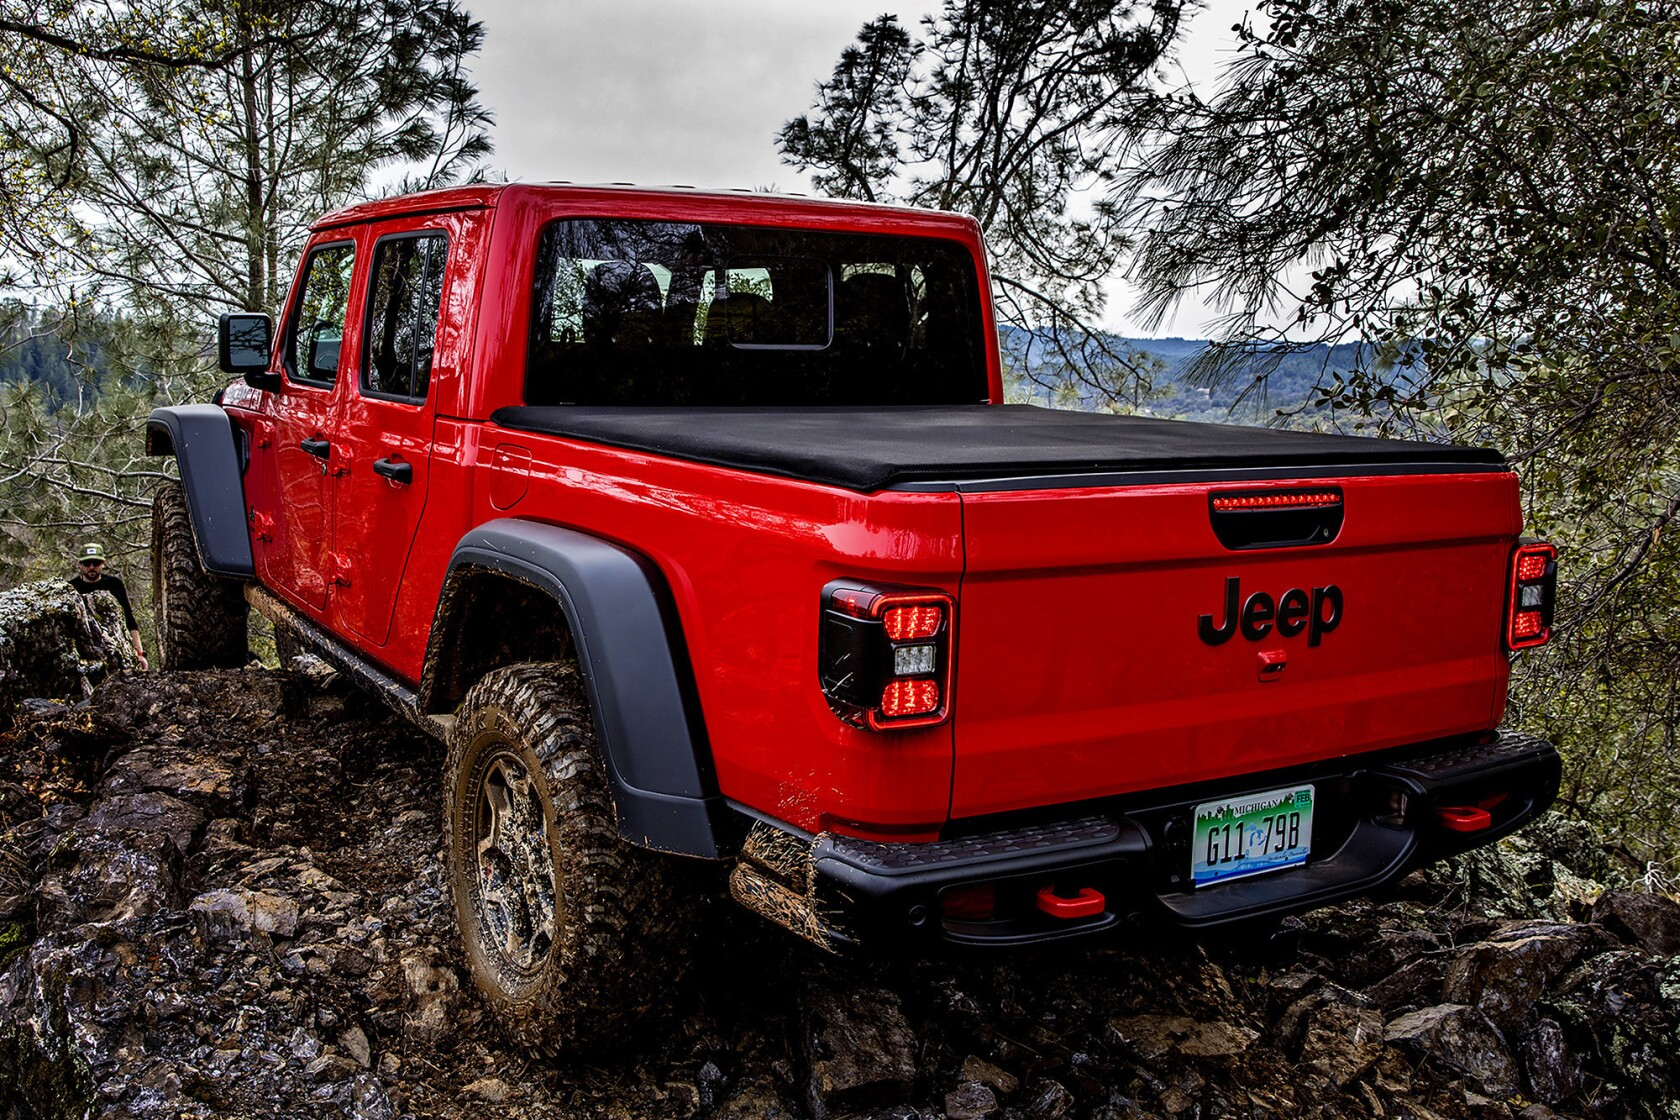 The 2020 Jeep Gladiator is a beastly pickup truck that's